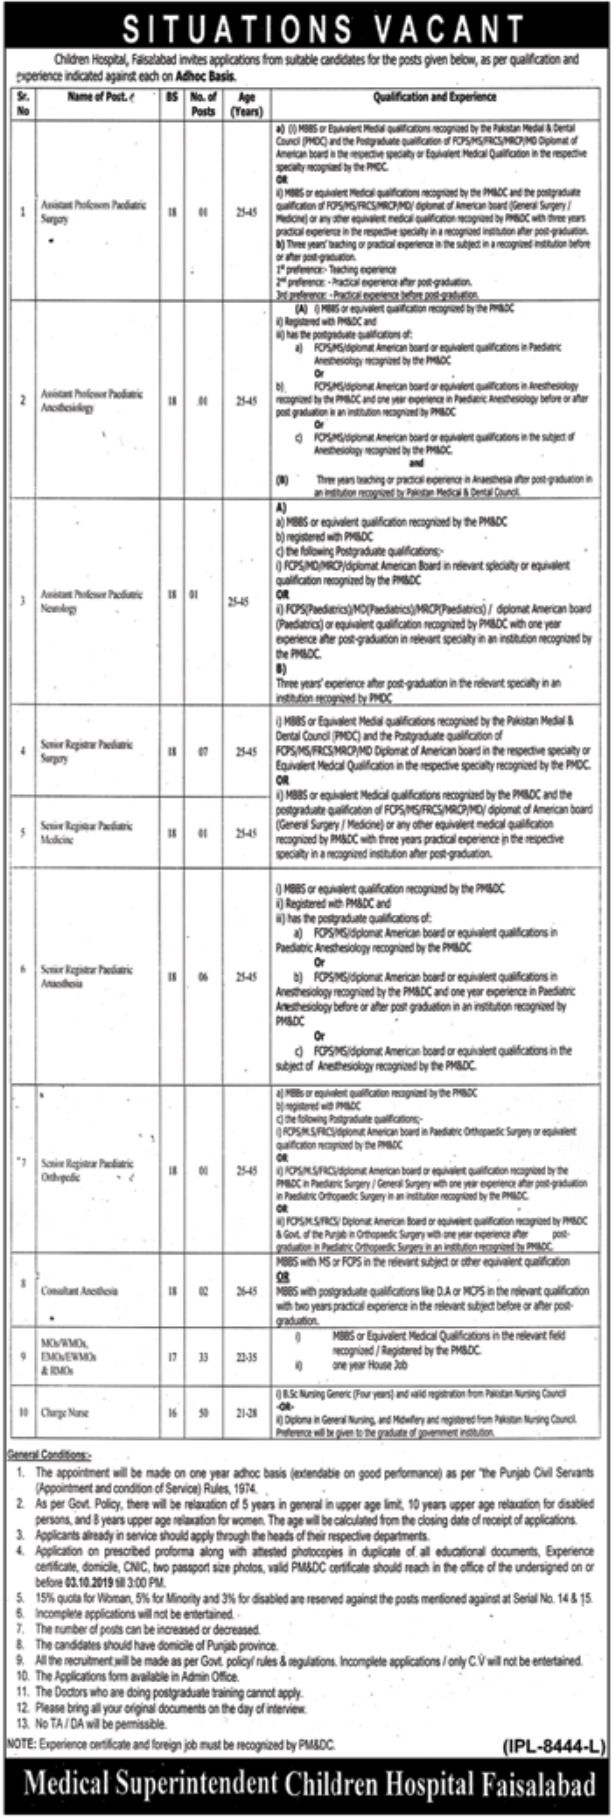 Children's Hospital Faisalabad Jobs 2019